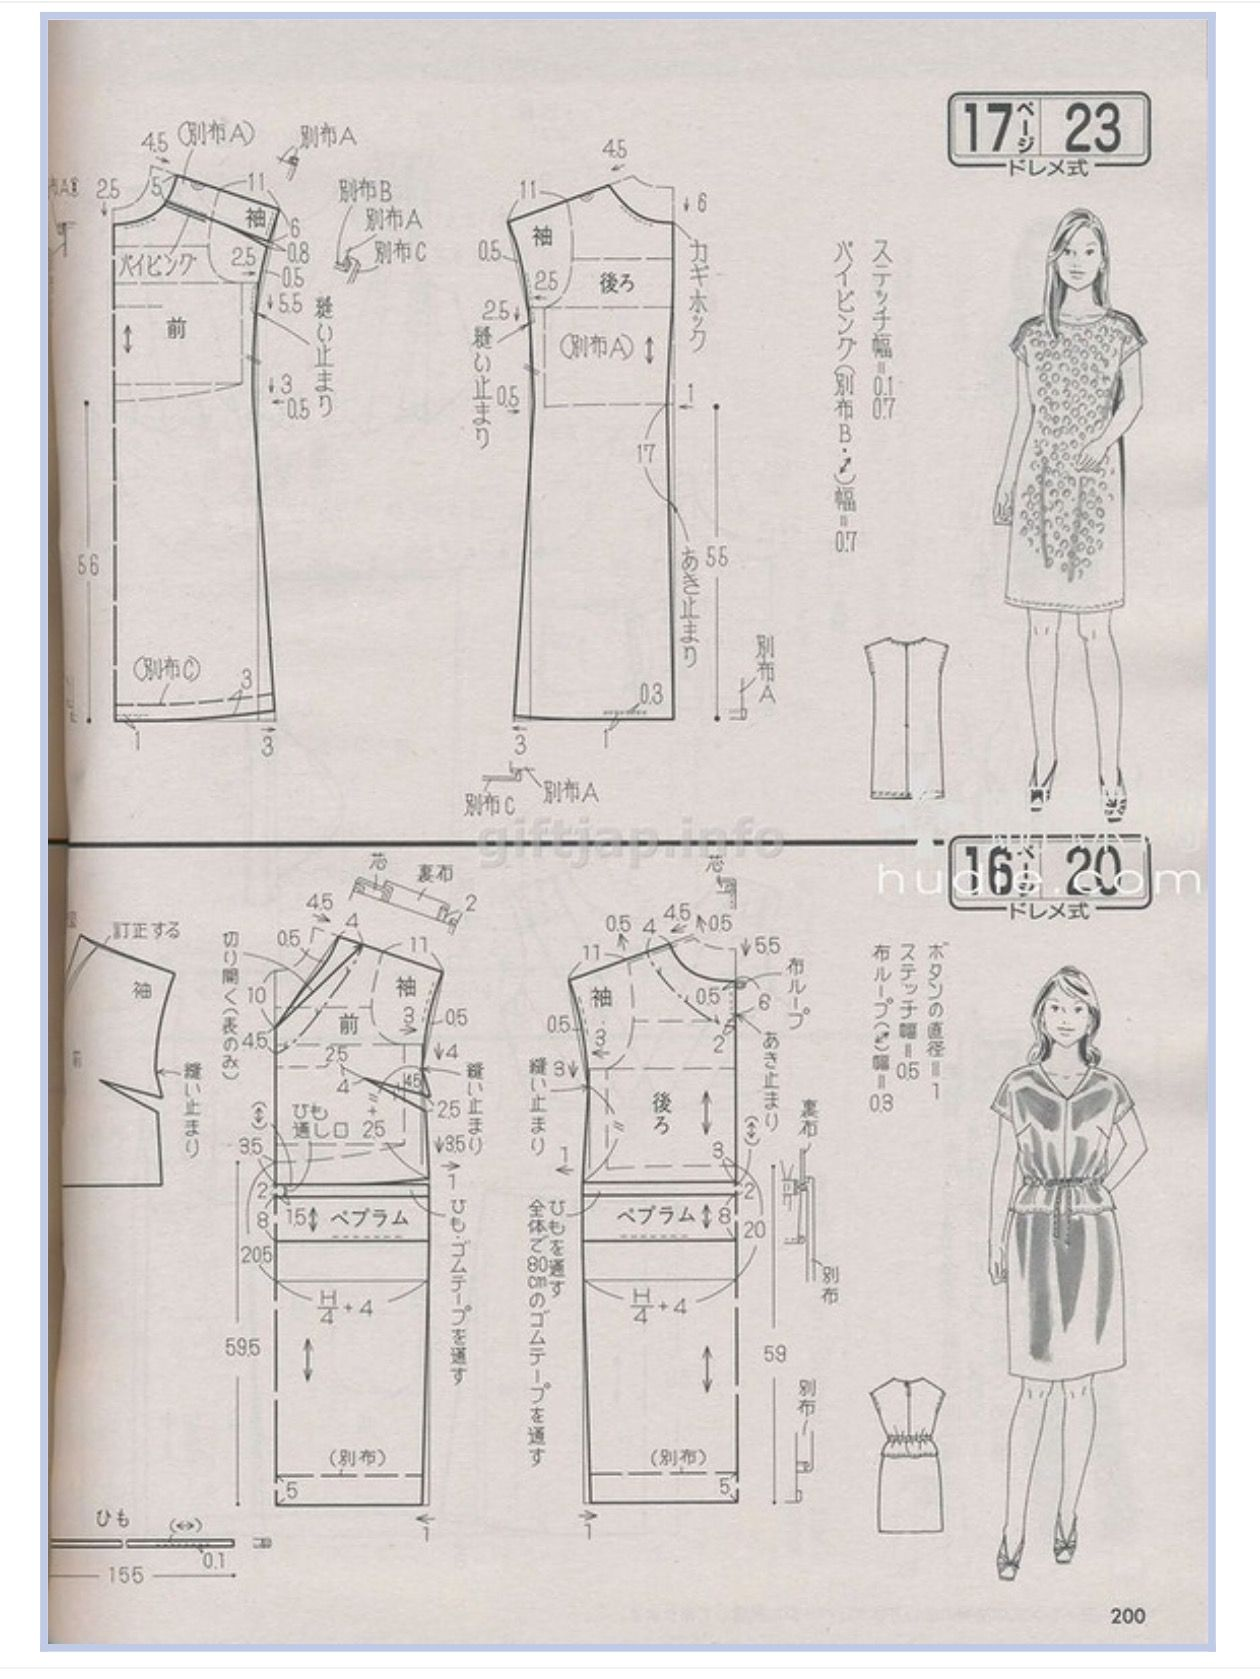 Pin by fen on pinterest ladies boutique sewing patterns ladies boutique slide rule sewing patterns stuff stuff activities patron de couture stitching patterns factory design pattern jeuxipadfo Image collections